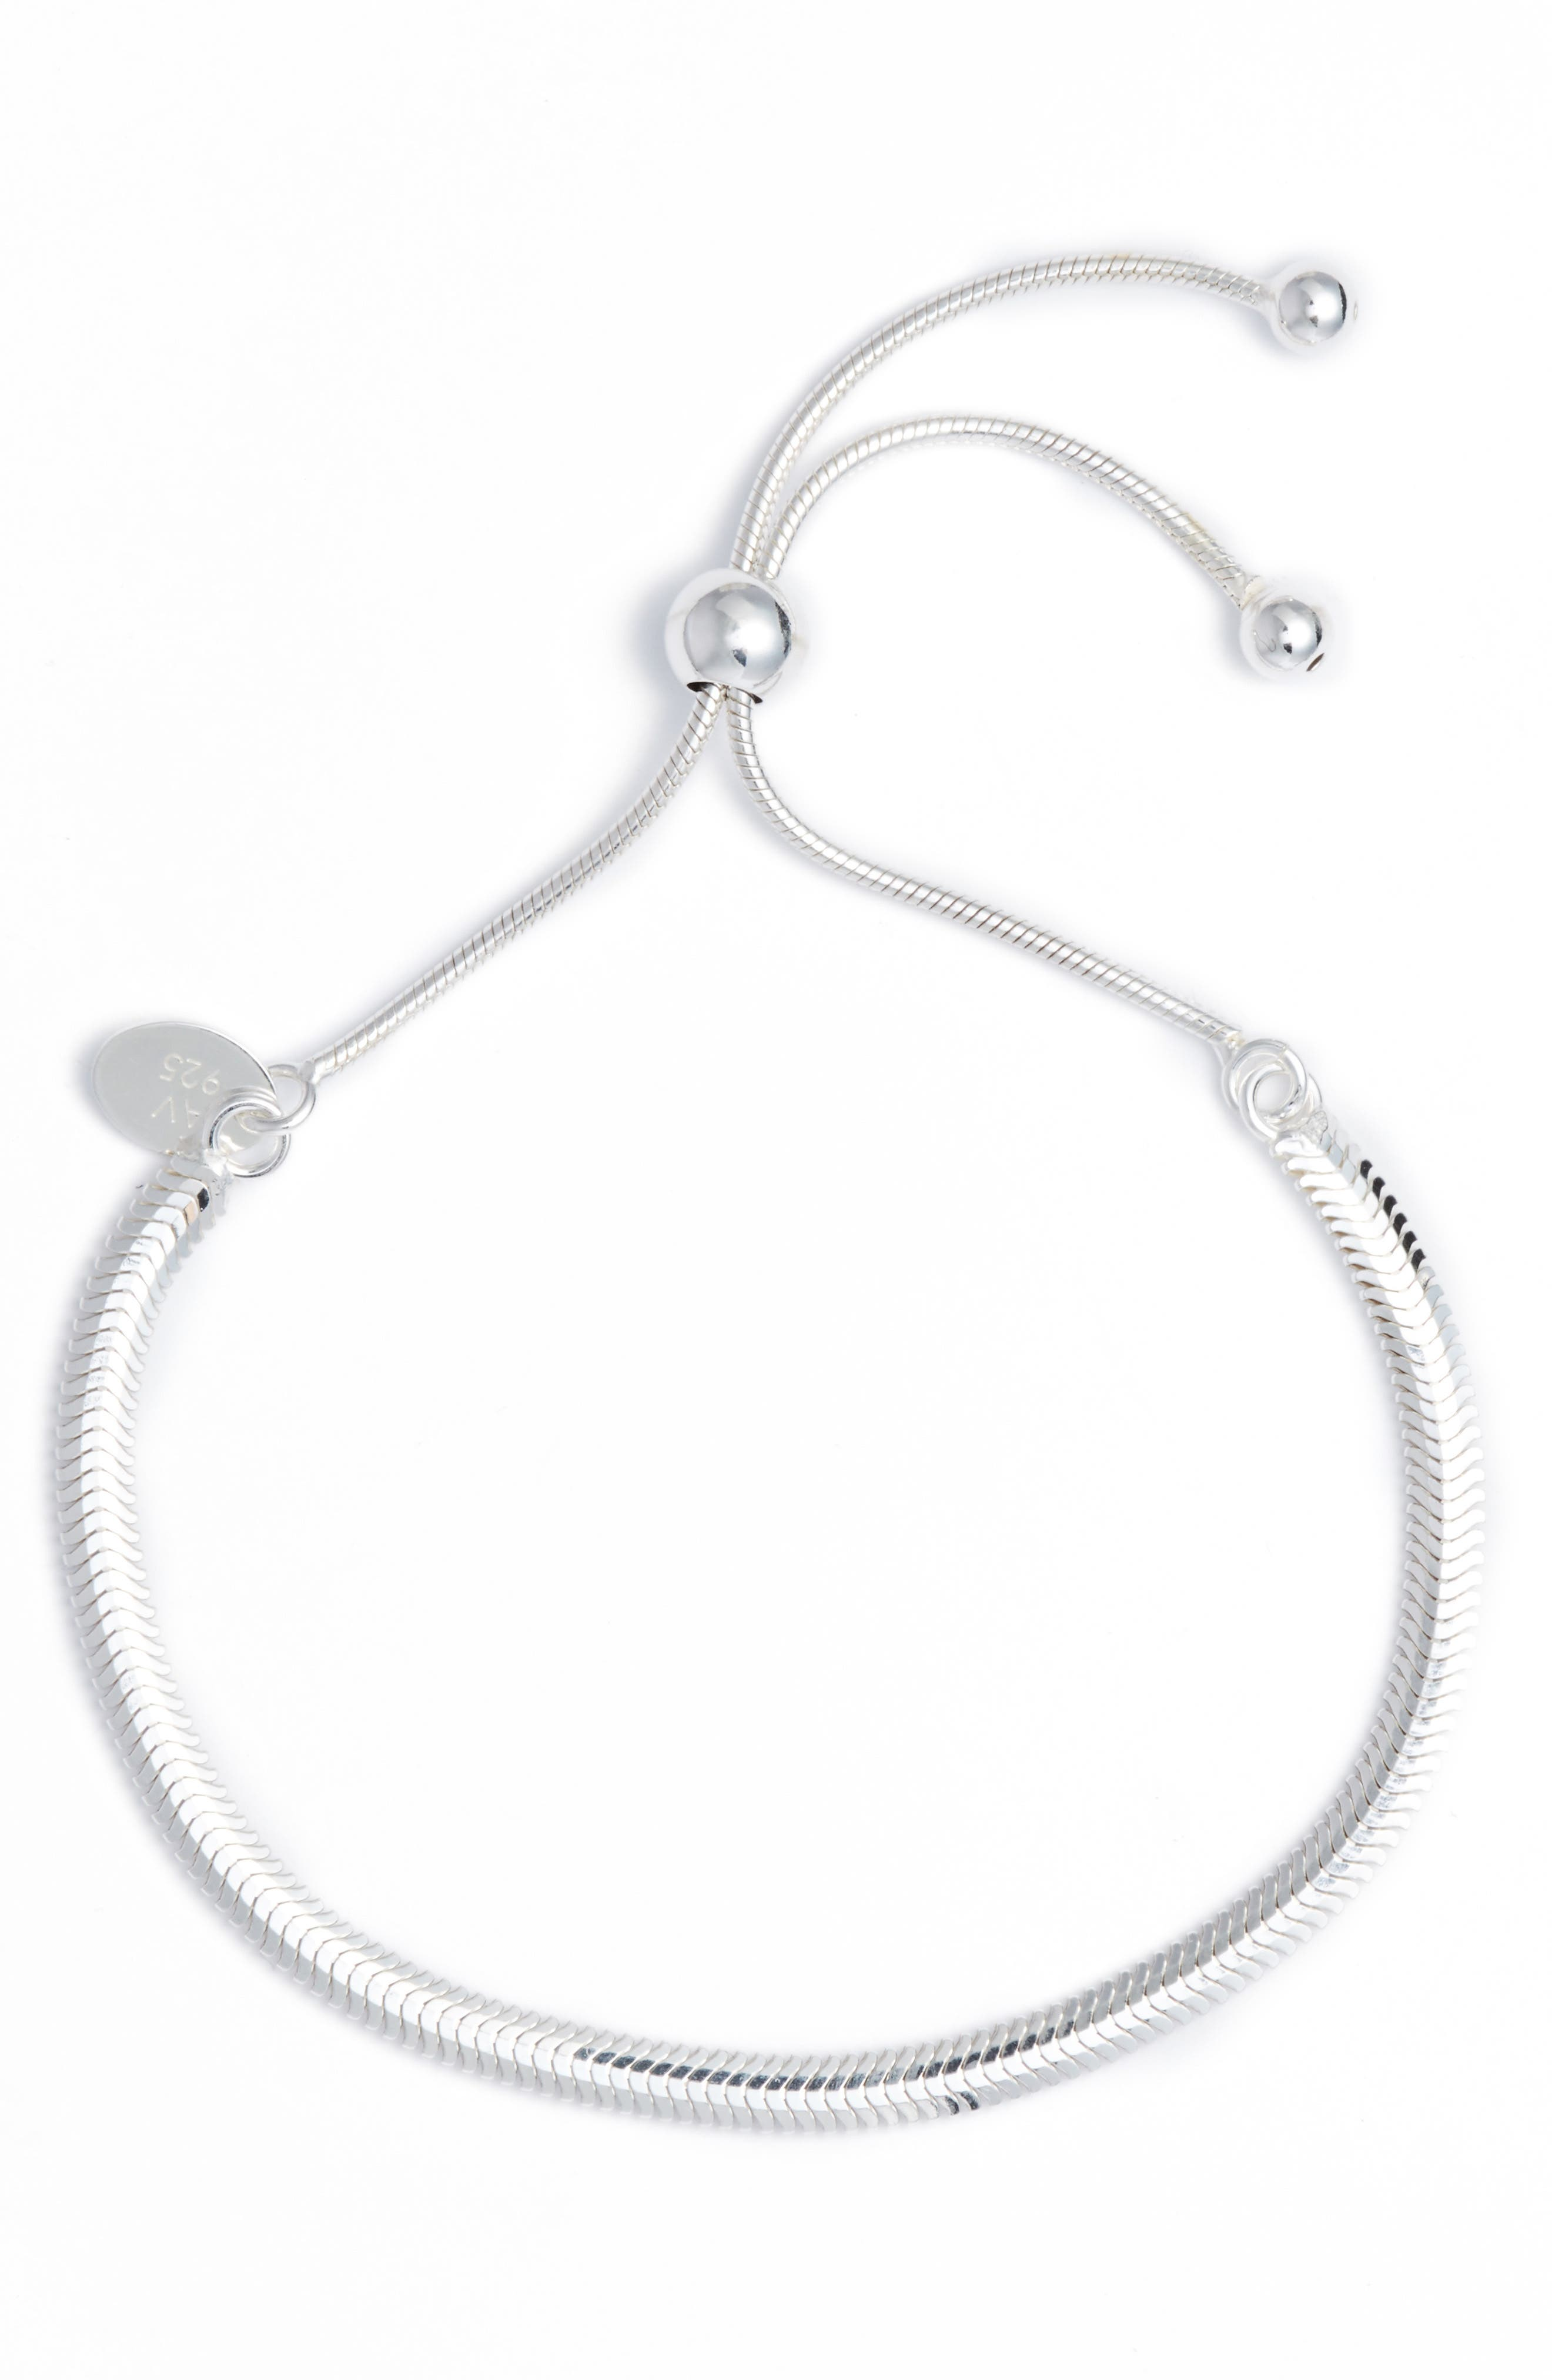 Main Image - Argento Vivo Herringbone Adjustable Bracelet